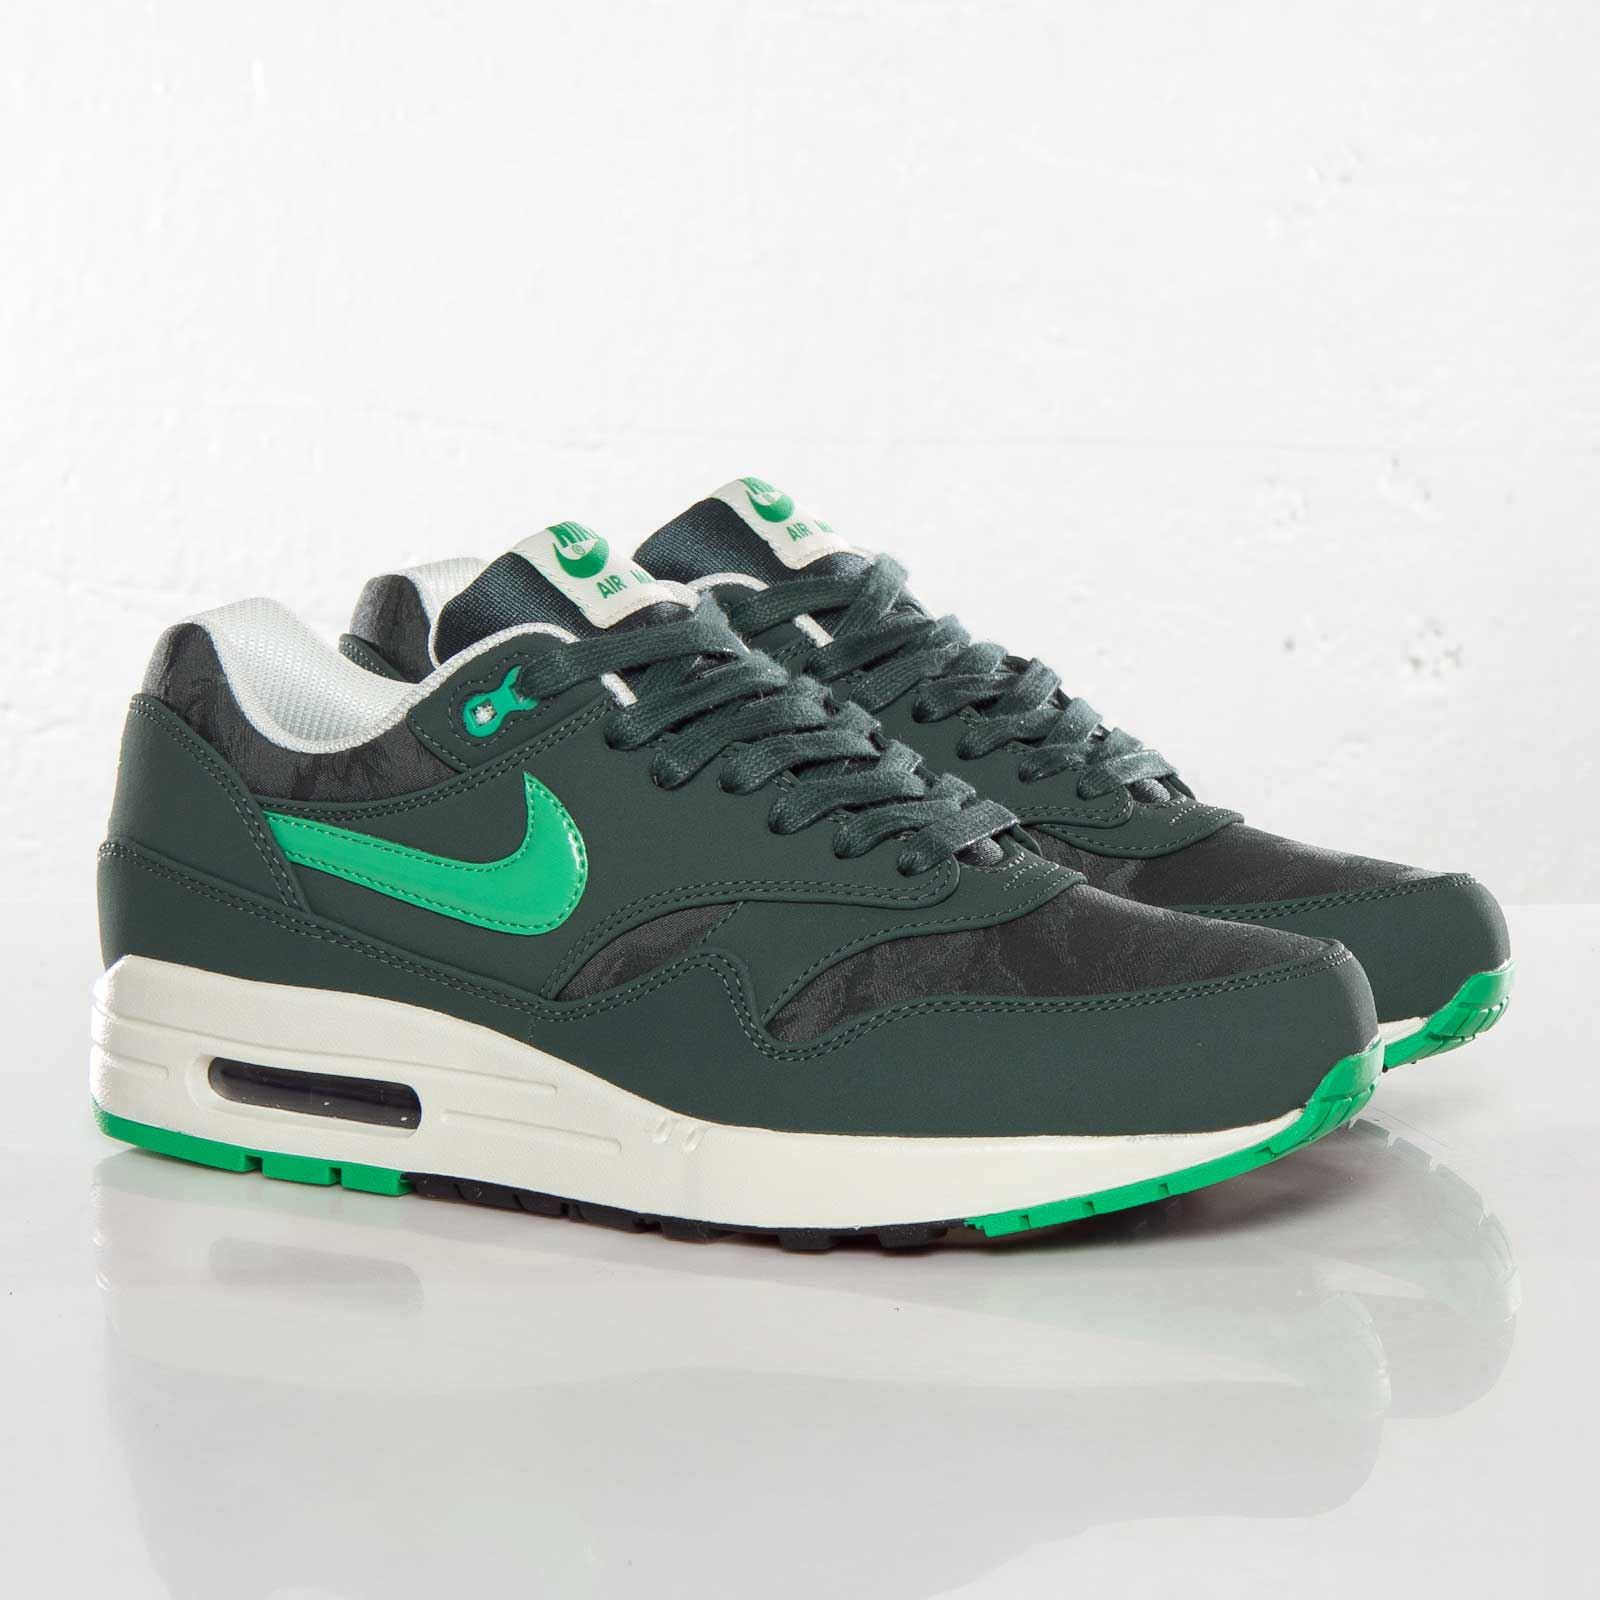 NIKE AIR MAX 1 Sneaker Trainer Grün Green Camouflage Vintage